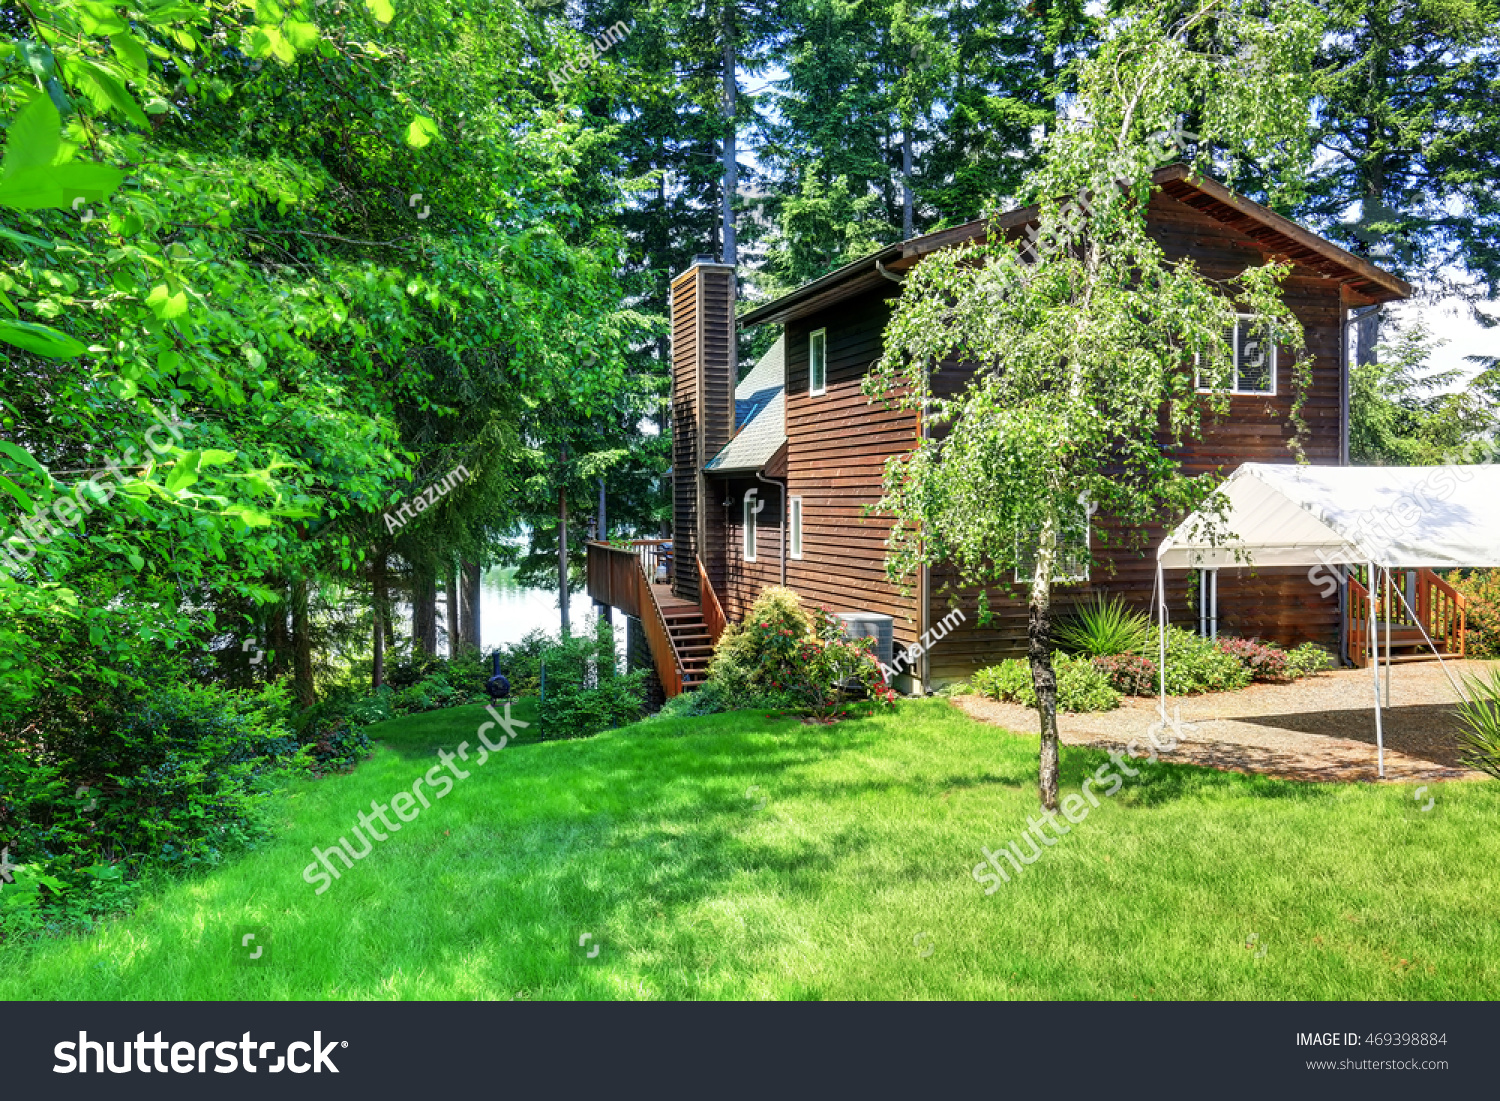 Backyard House Exterior Wooden Trim Small Stock Photo